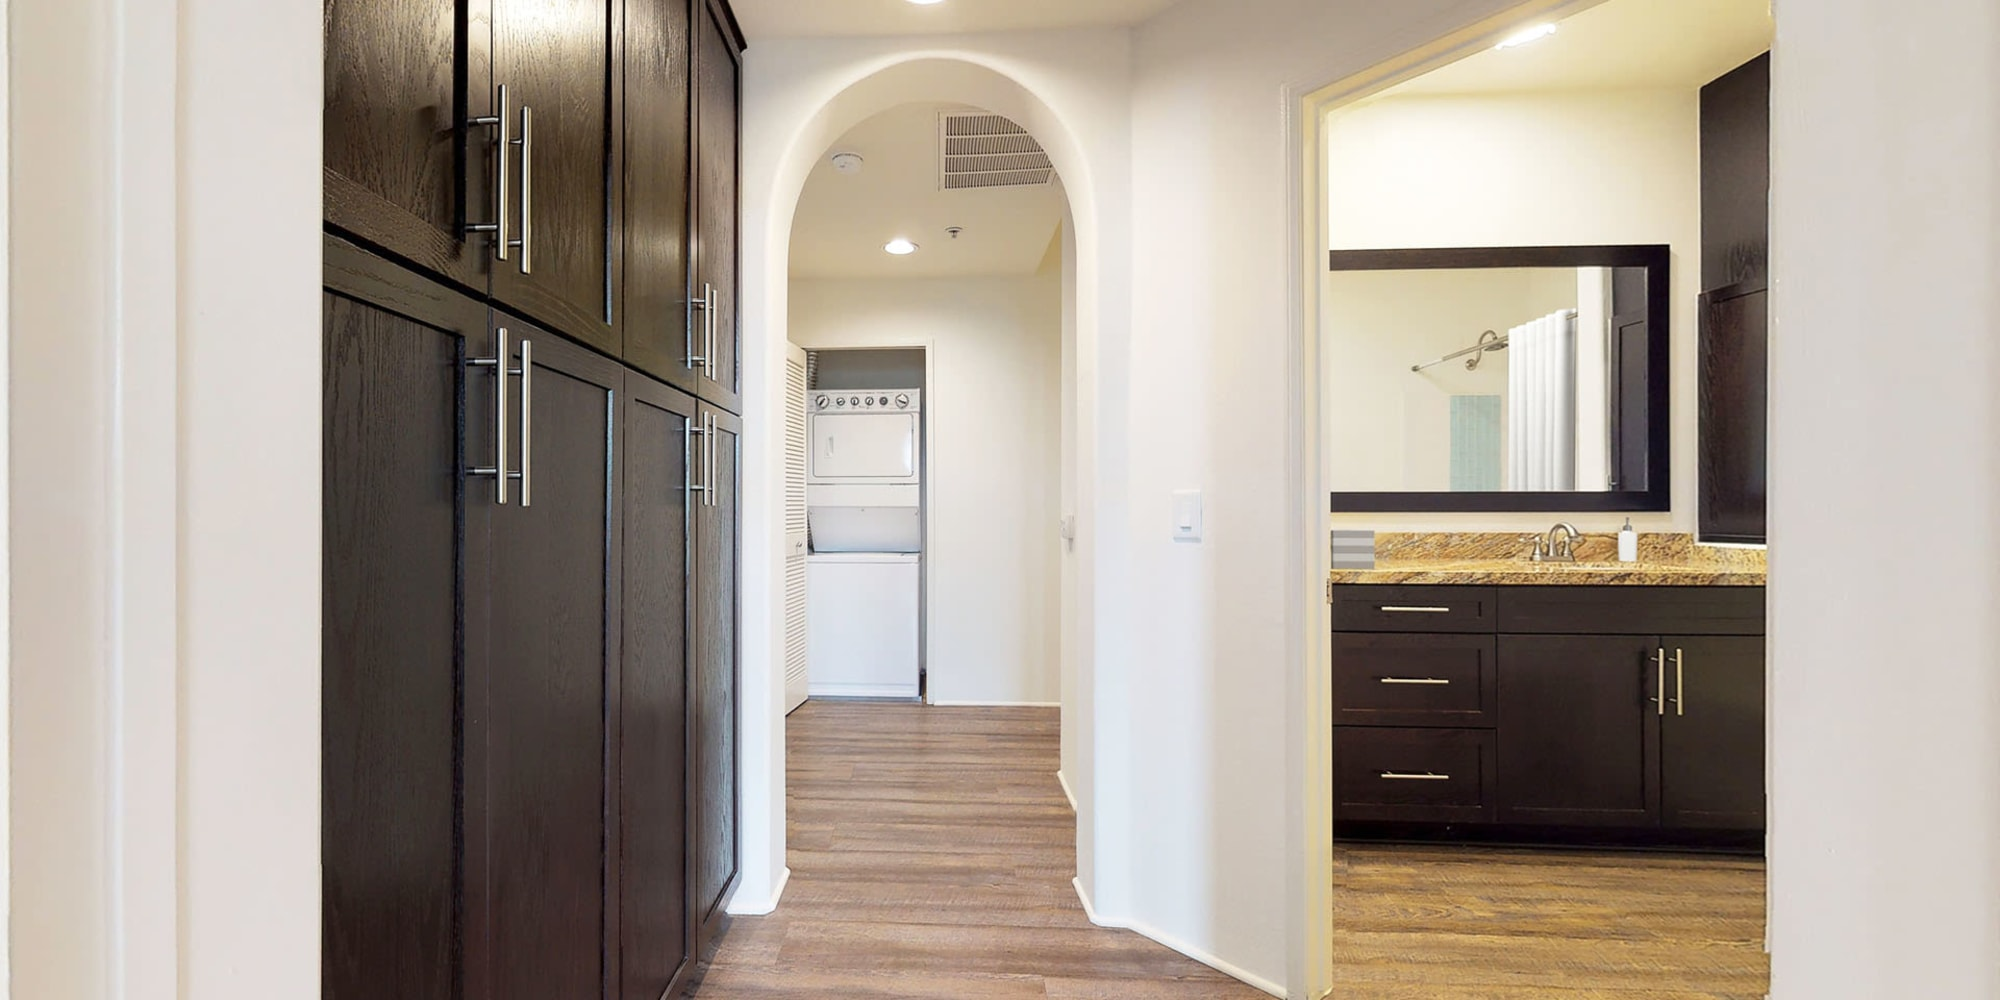 Espresso wood cupboard for extra storage in a model home's hallway leading to the stacked in-home washer and dryer at L'Estancia in Studio City, California